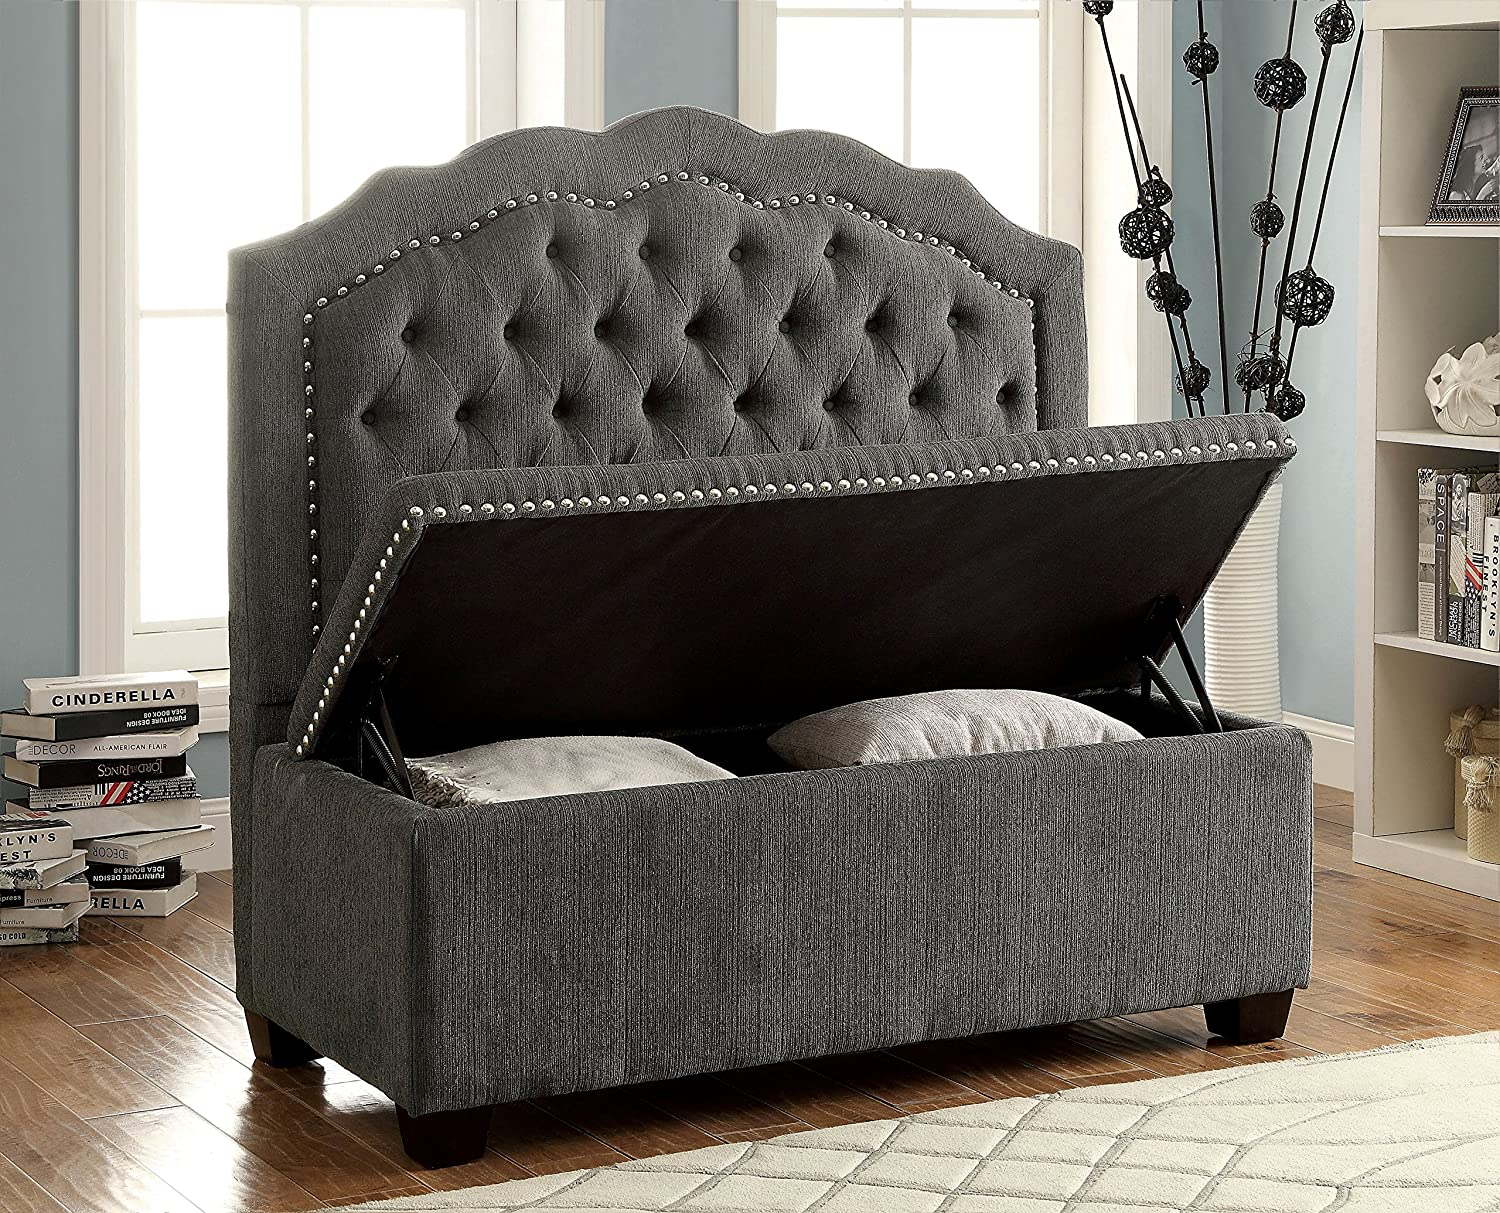 Amazoncom Furniture of America Adia Romantic Wingback Love Seat